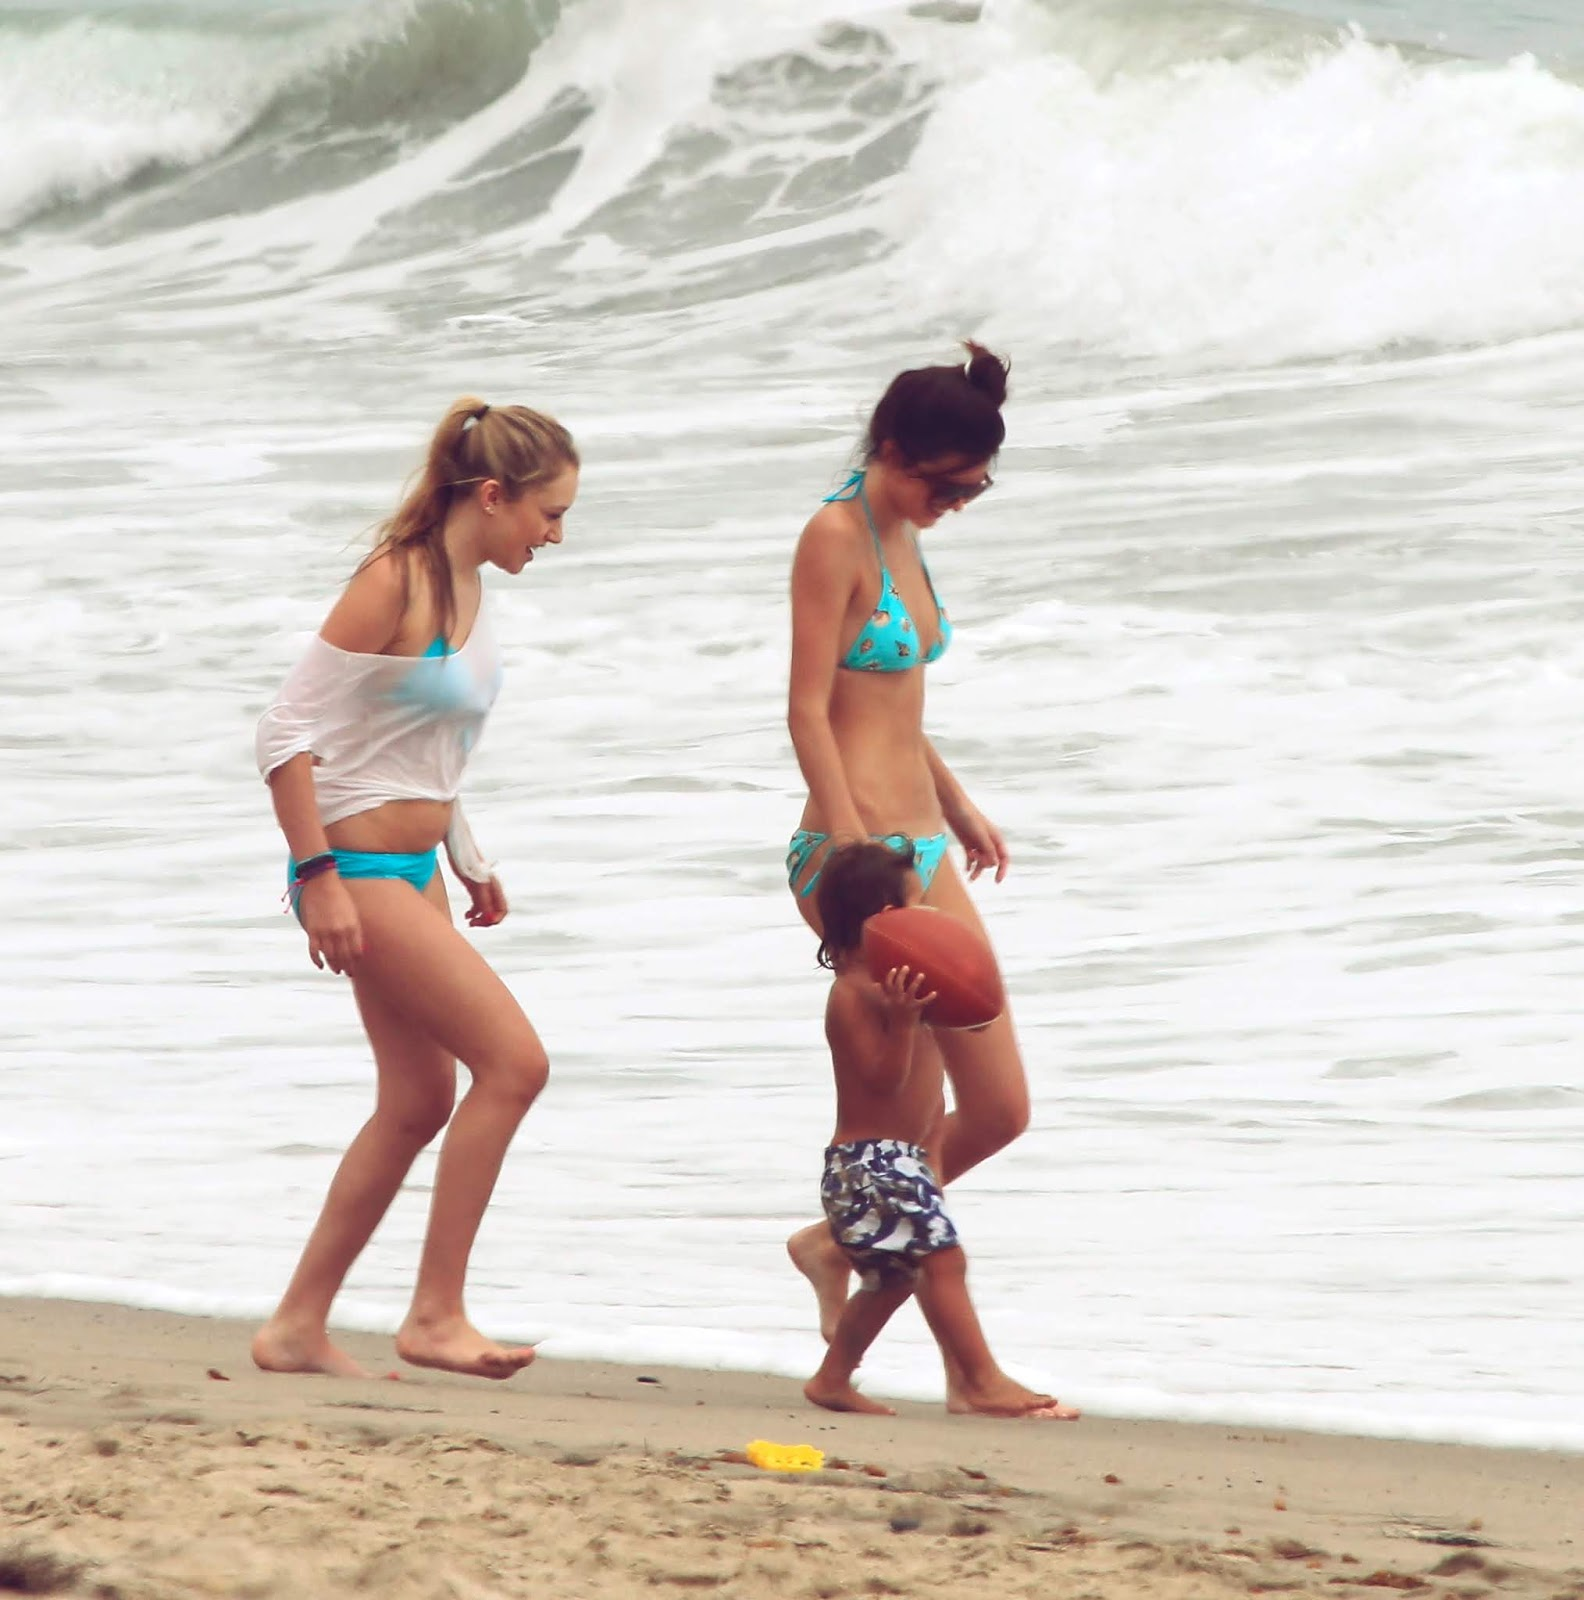 31 - At a Beach with friends in Malibu California on July 14, 2012